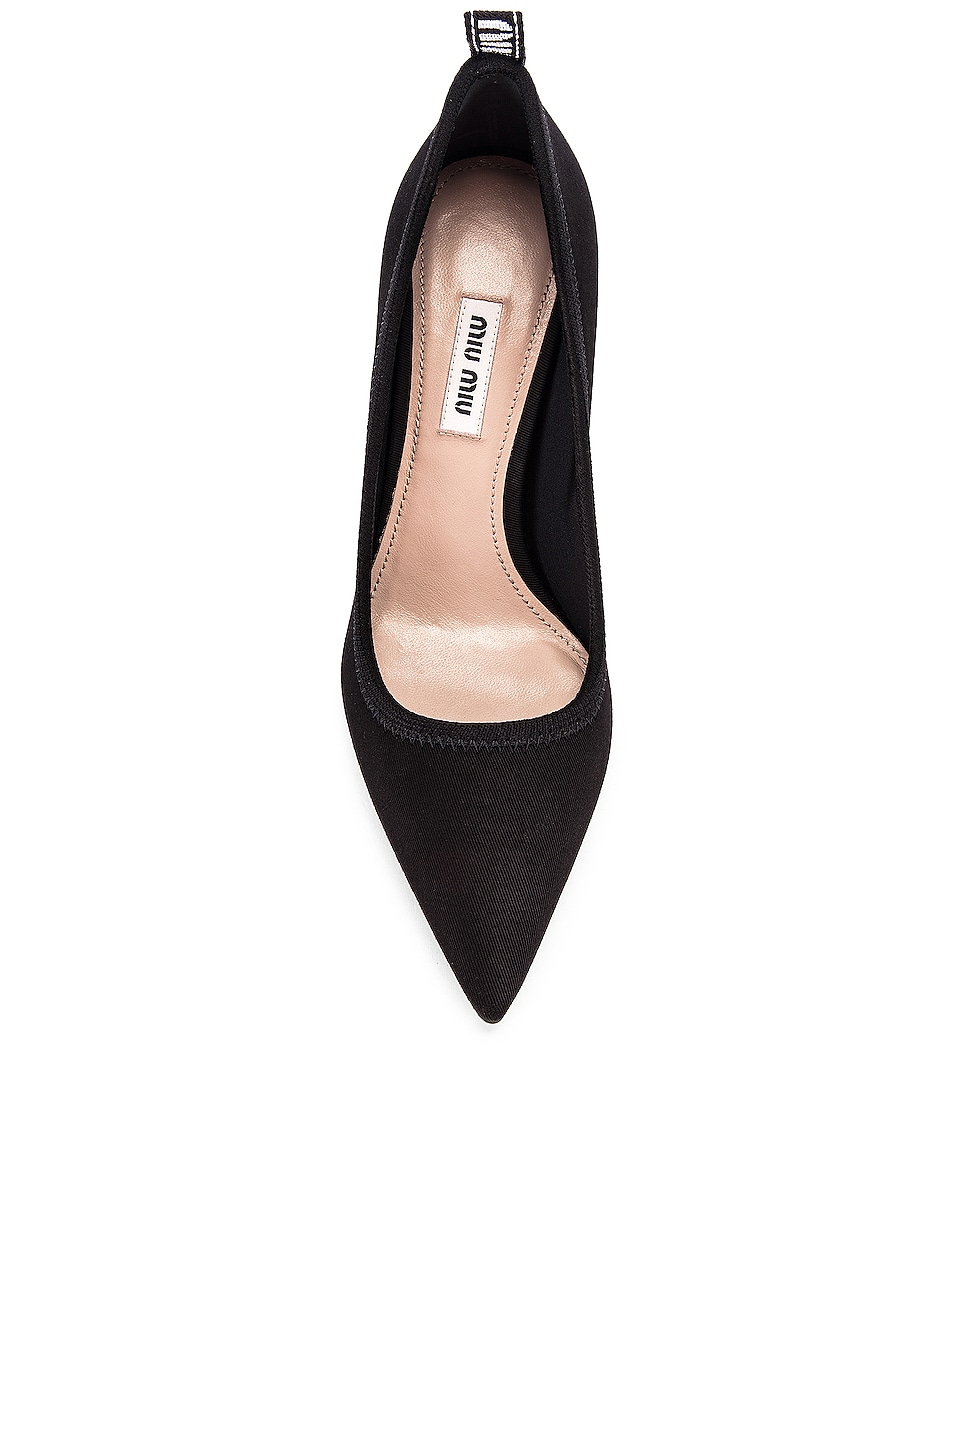 Image 4 of Miu Miu Pointed Toe Heels in Black